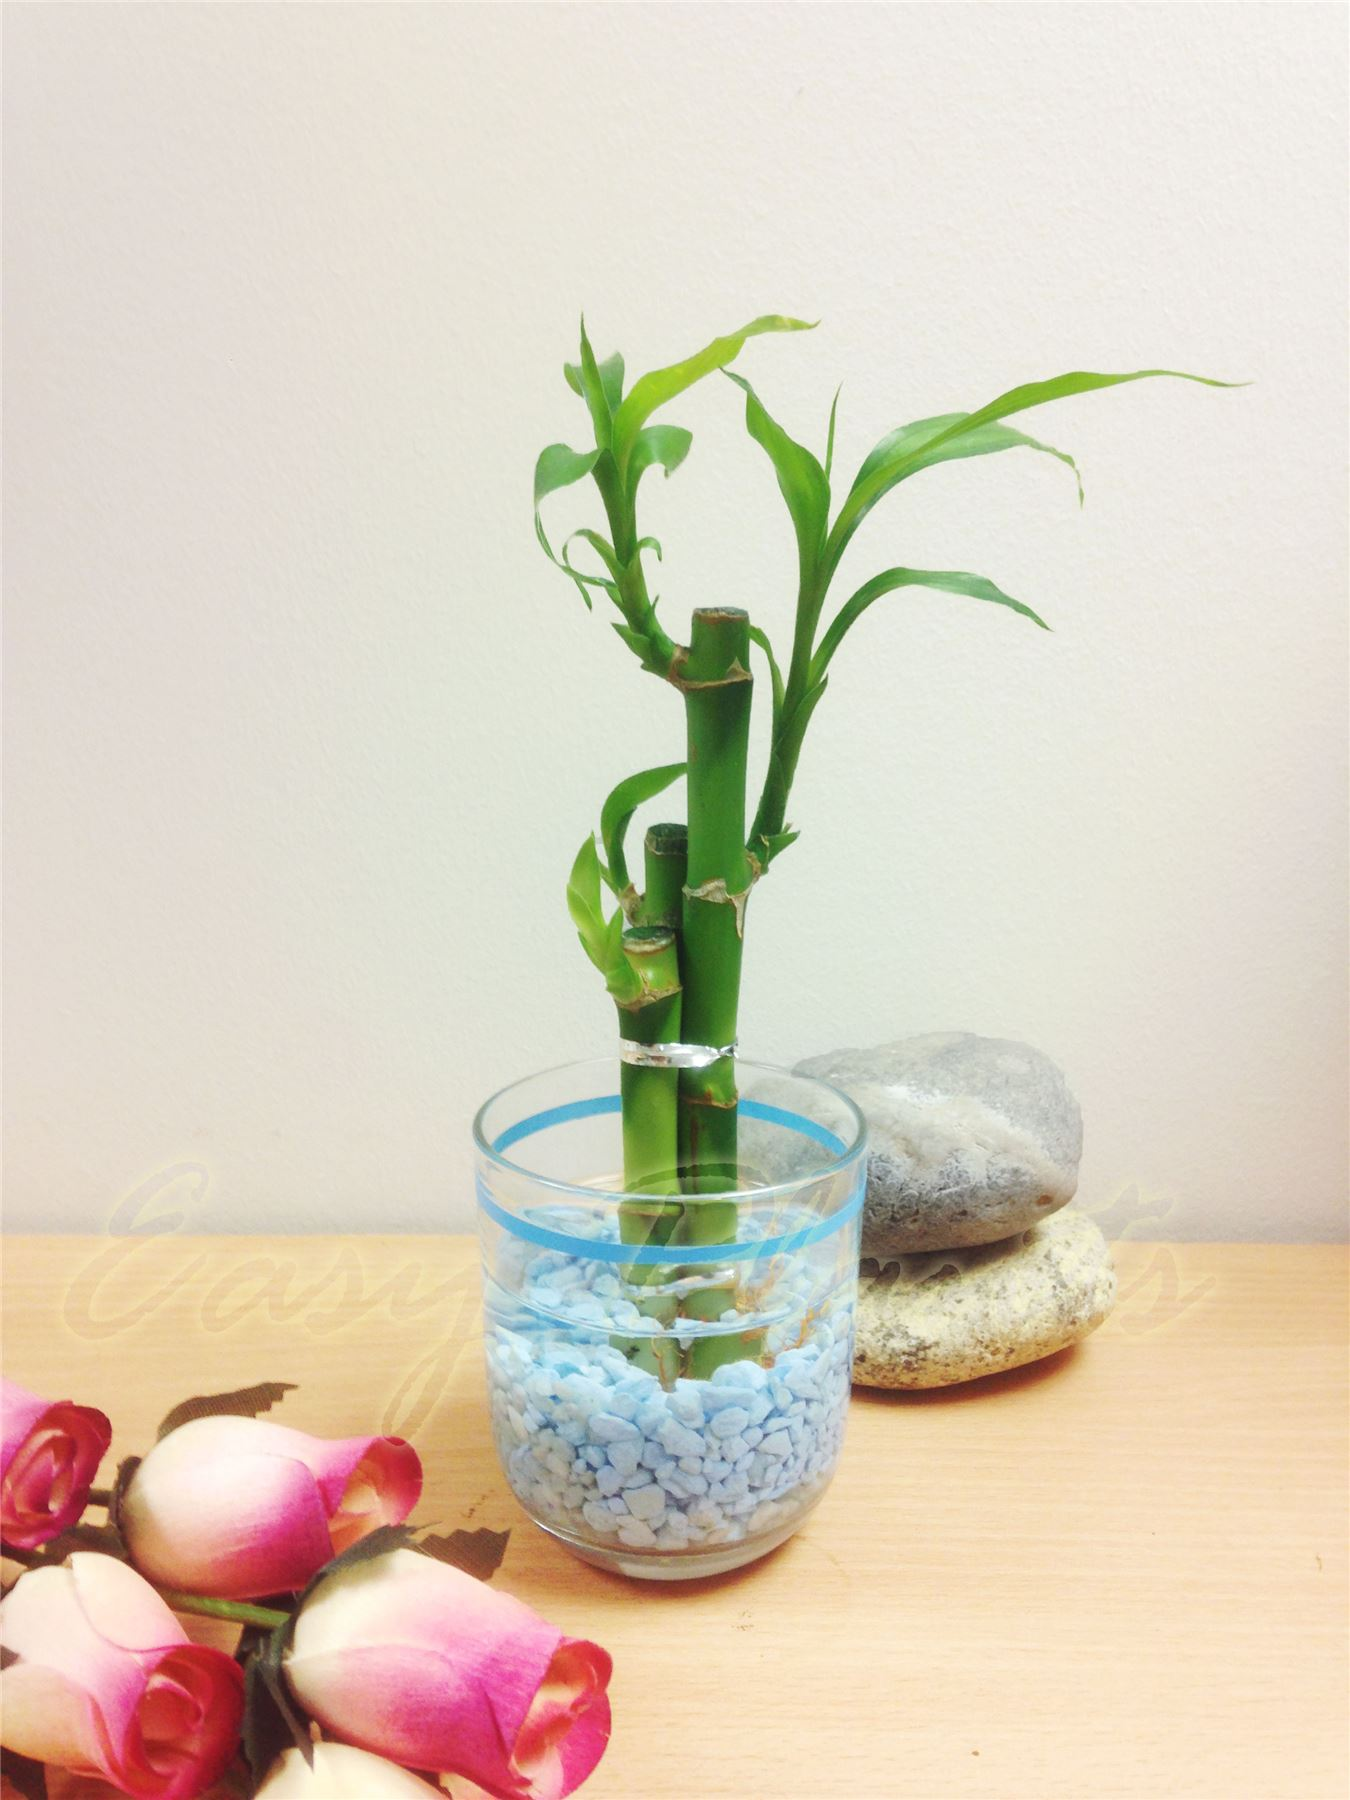 Bamboo Vase Decoration 1 Lucky Bamboo Ribbon Plant 3 Stalks In Colour Vase House